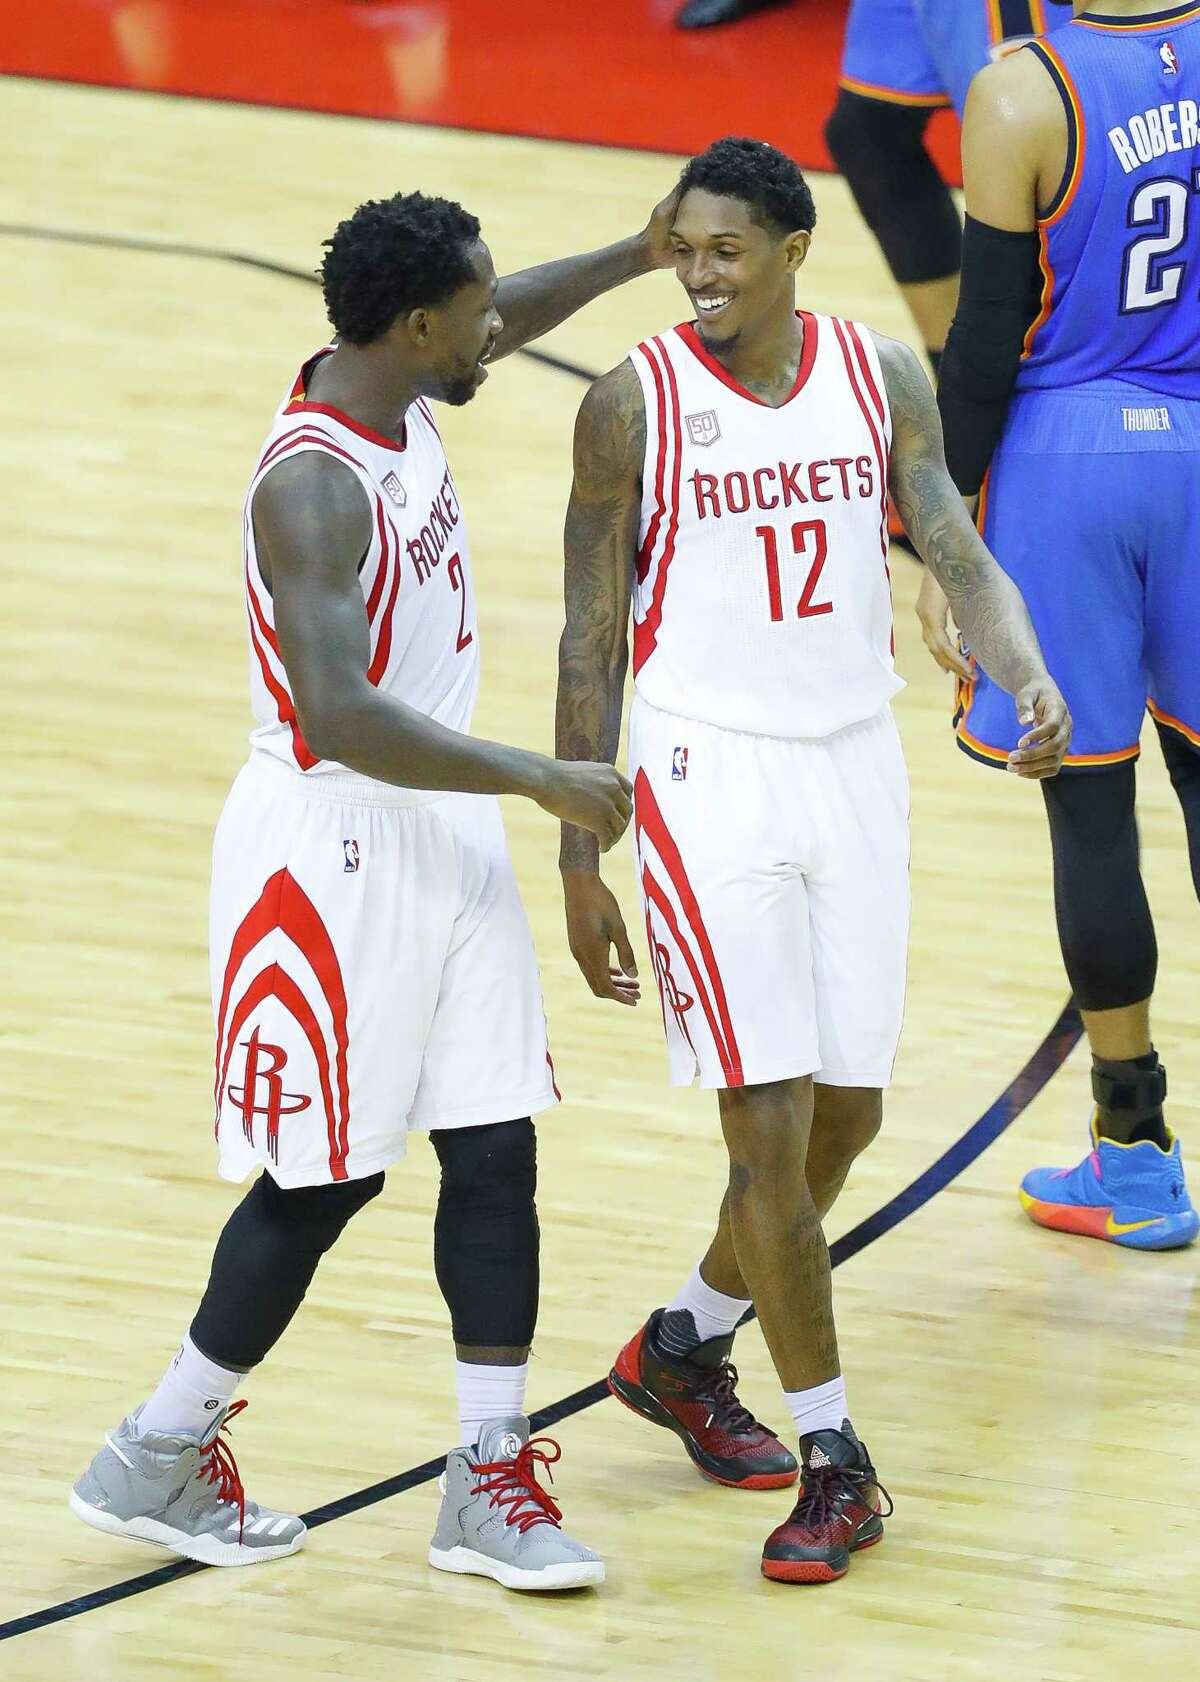 Houston Rockets guard Patrick Beverley (2) congratulates Houston Rockets guard Lou Williams (12) during the first half of Game 5 of a Western Conference quarterfinals of the 2017 NBA playoffs, Tuesday, April 24, 2017, at Toyota Center in Houston.